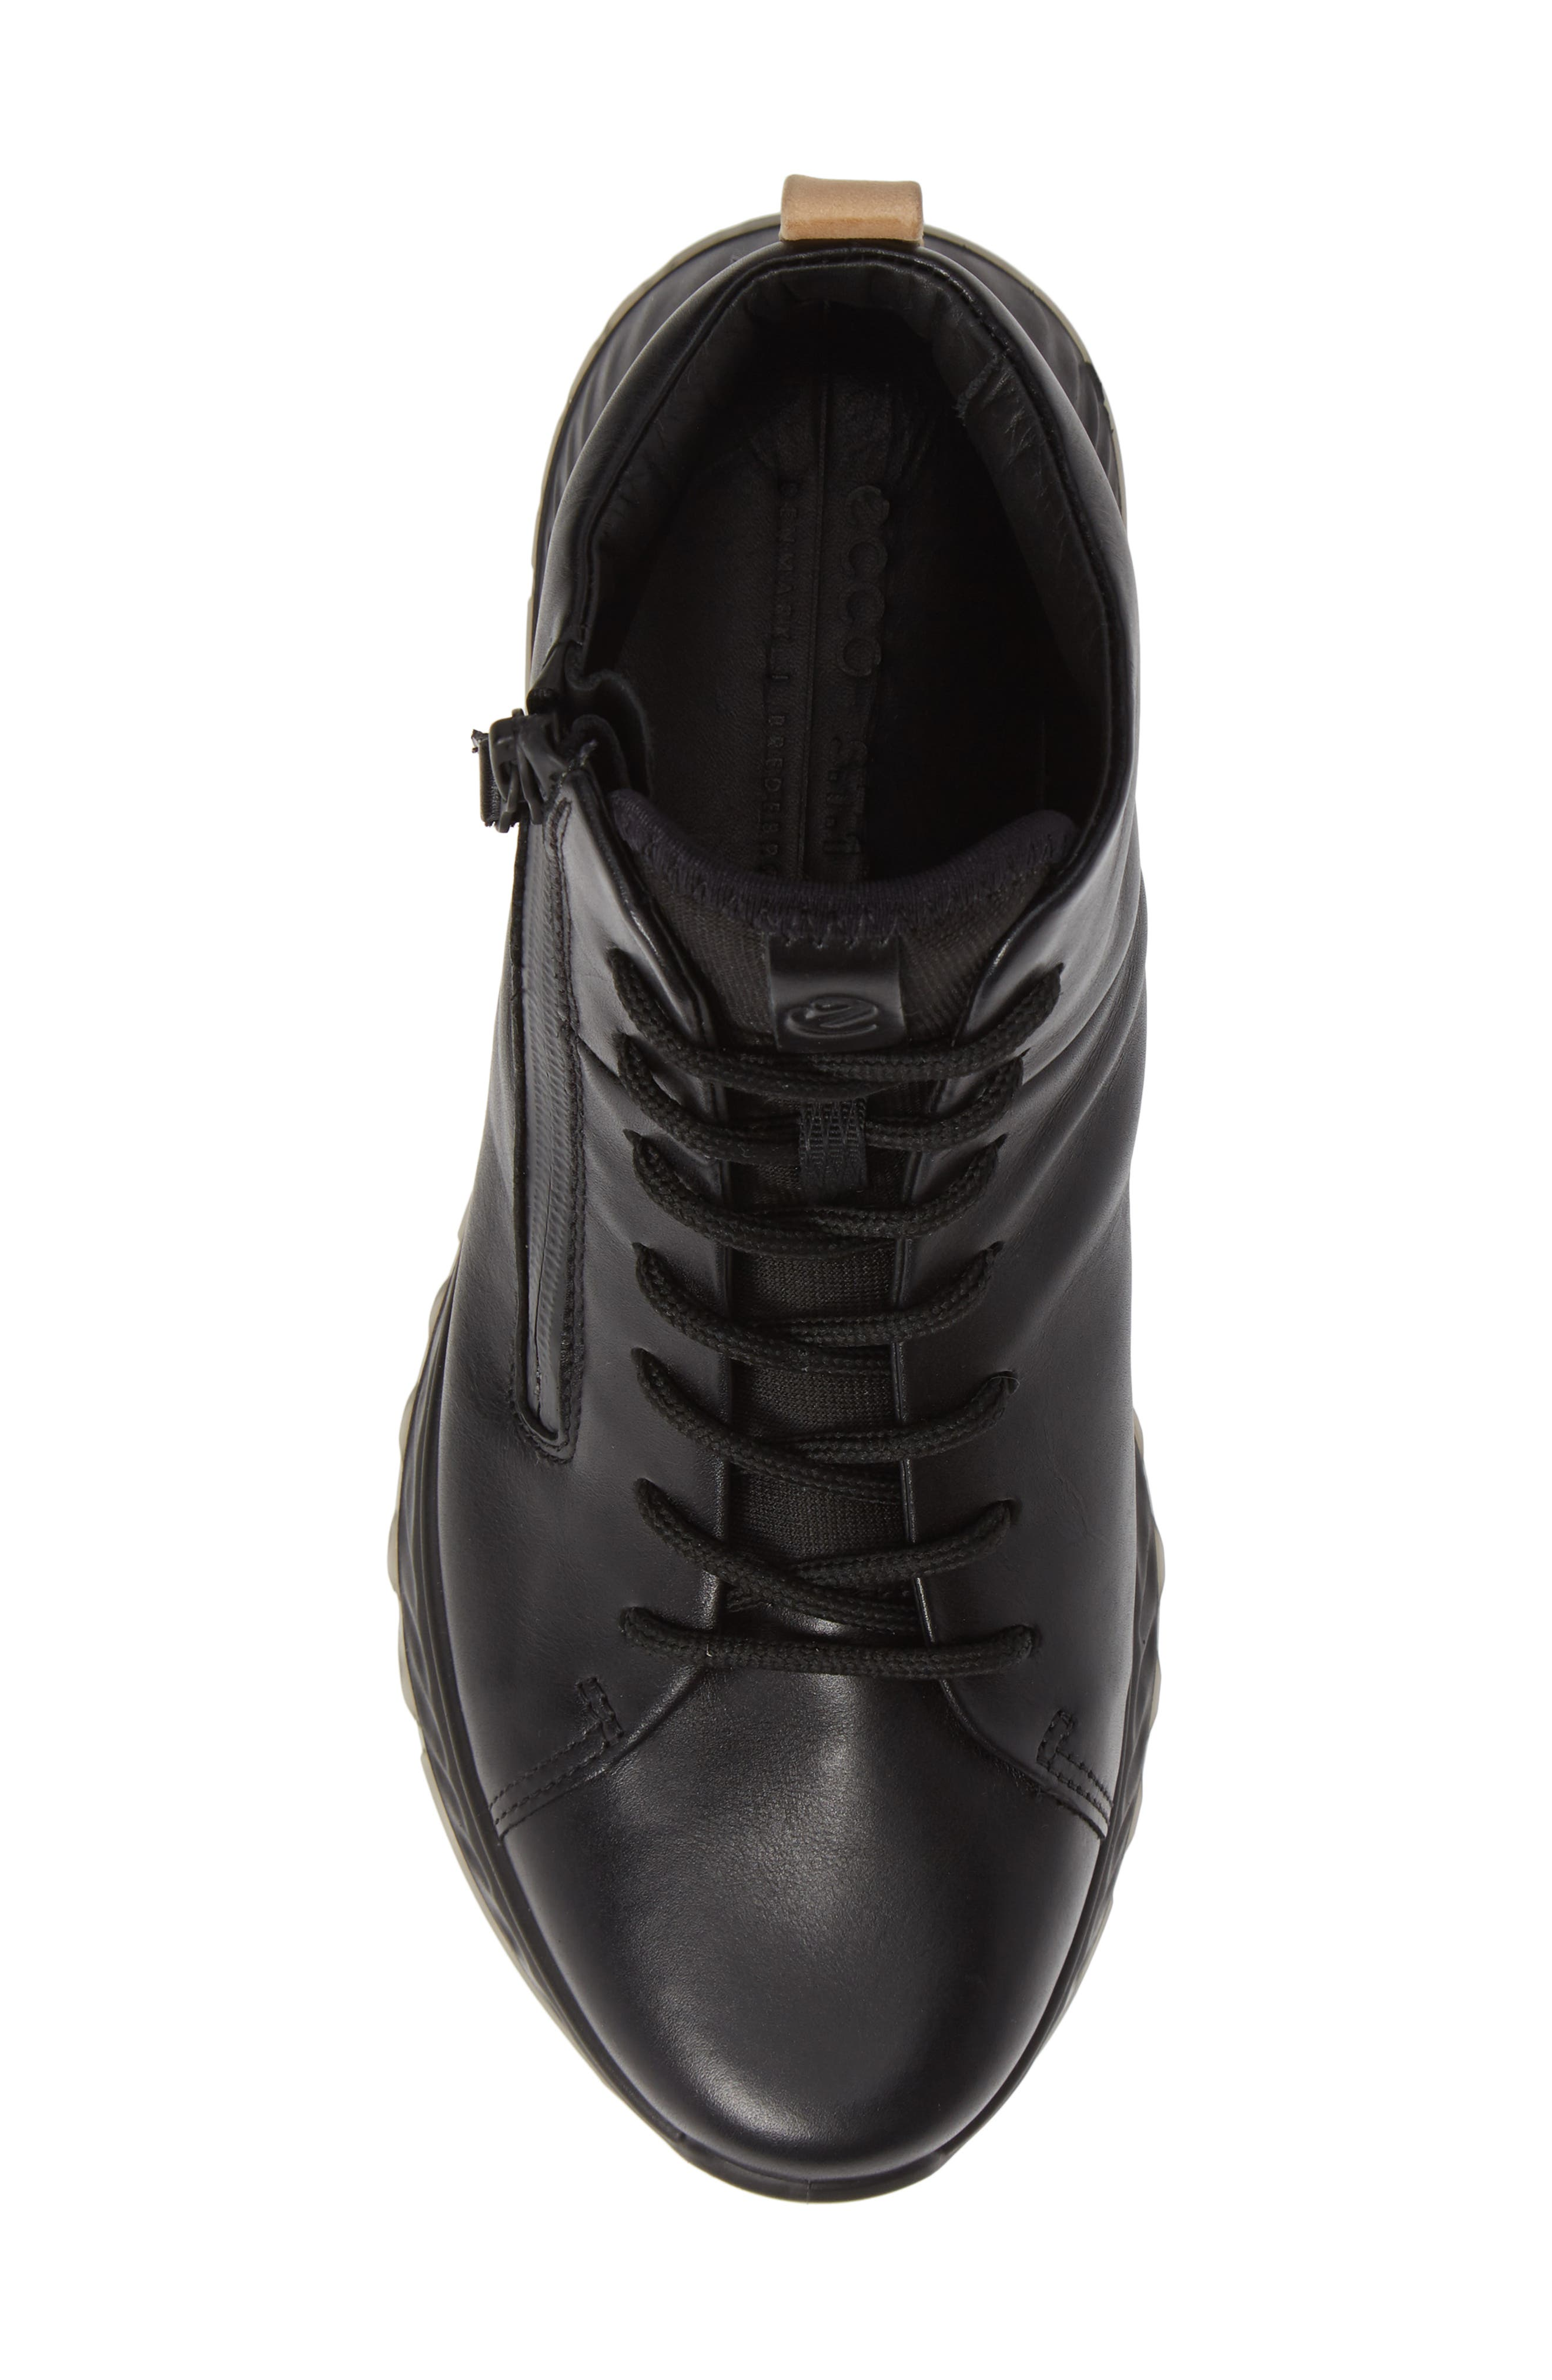 ST1 High Top Sneaker,                             Alternate thumbnail 5, color,                             BLACK LEATHER